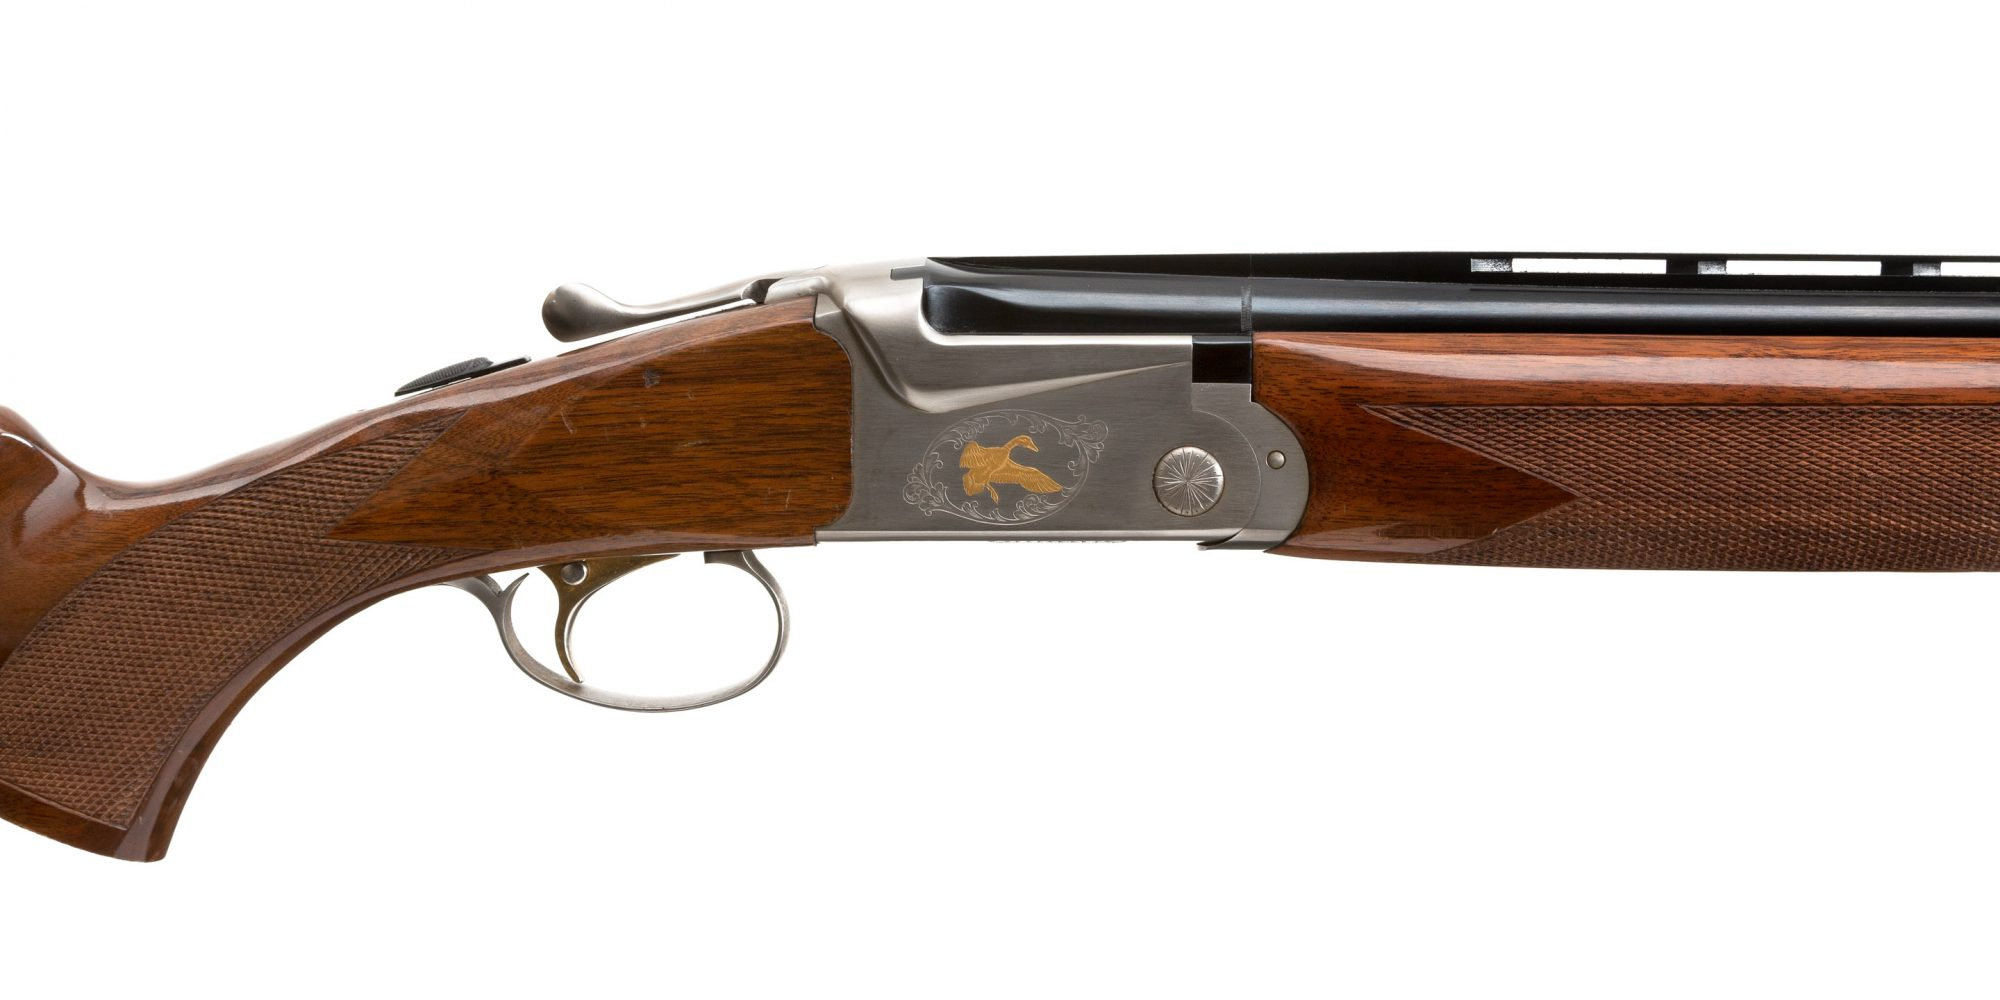 Photo of a pre-owned SKB Model 585 Field Gold Package, for sale as-is by Turnbull Restoration of Bloomfield, NY